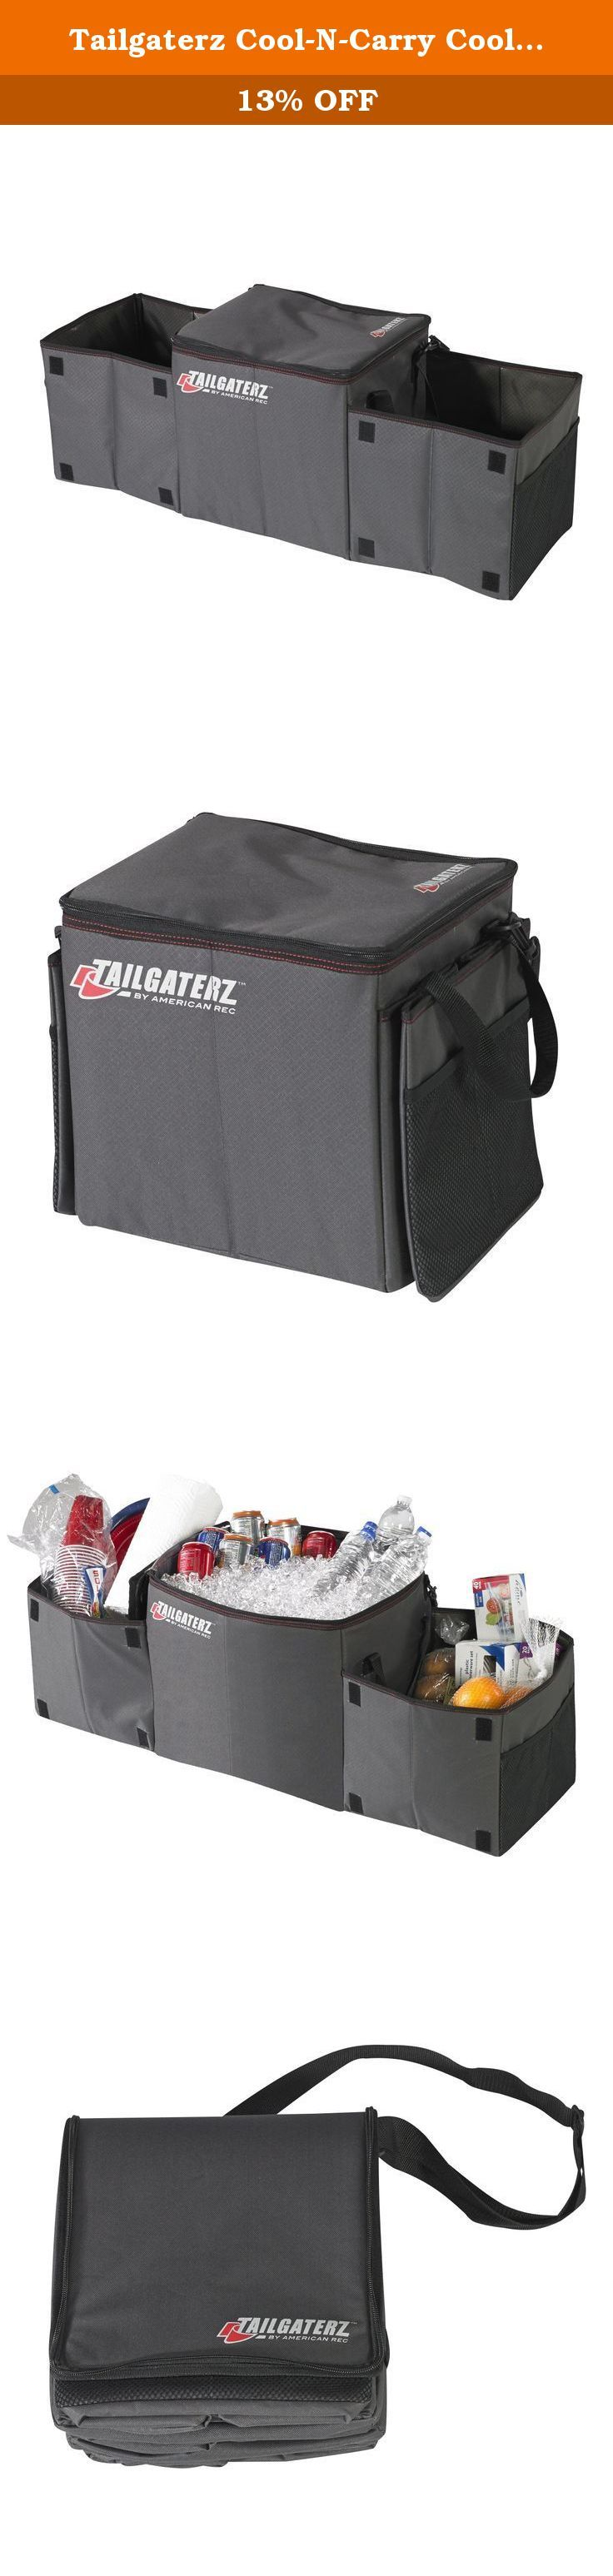 Tailgaterz Cool-N-Carry Cooler/Organizer, Game Day Graphite. More than just a cooler, the Cool-N-Carry keeps beverages cold and snacks organized, simplifying you mobile recreation lifestyle. The versatile side compartments fold or expand independently so they don't take up space when you don't need them and organize your stuff when you do. Mesh pockets on the side are convenient to get to when the side compartments are folded also. The insulated cooler compartment will keep your beverages...